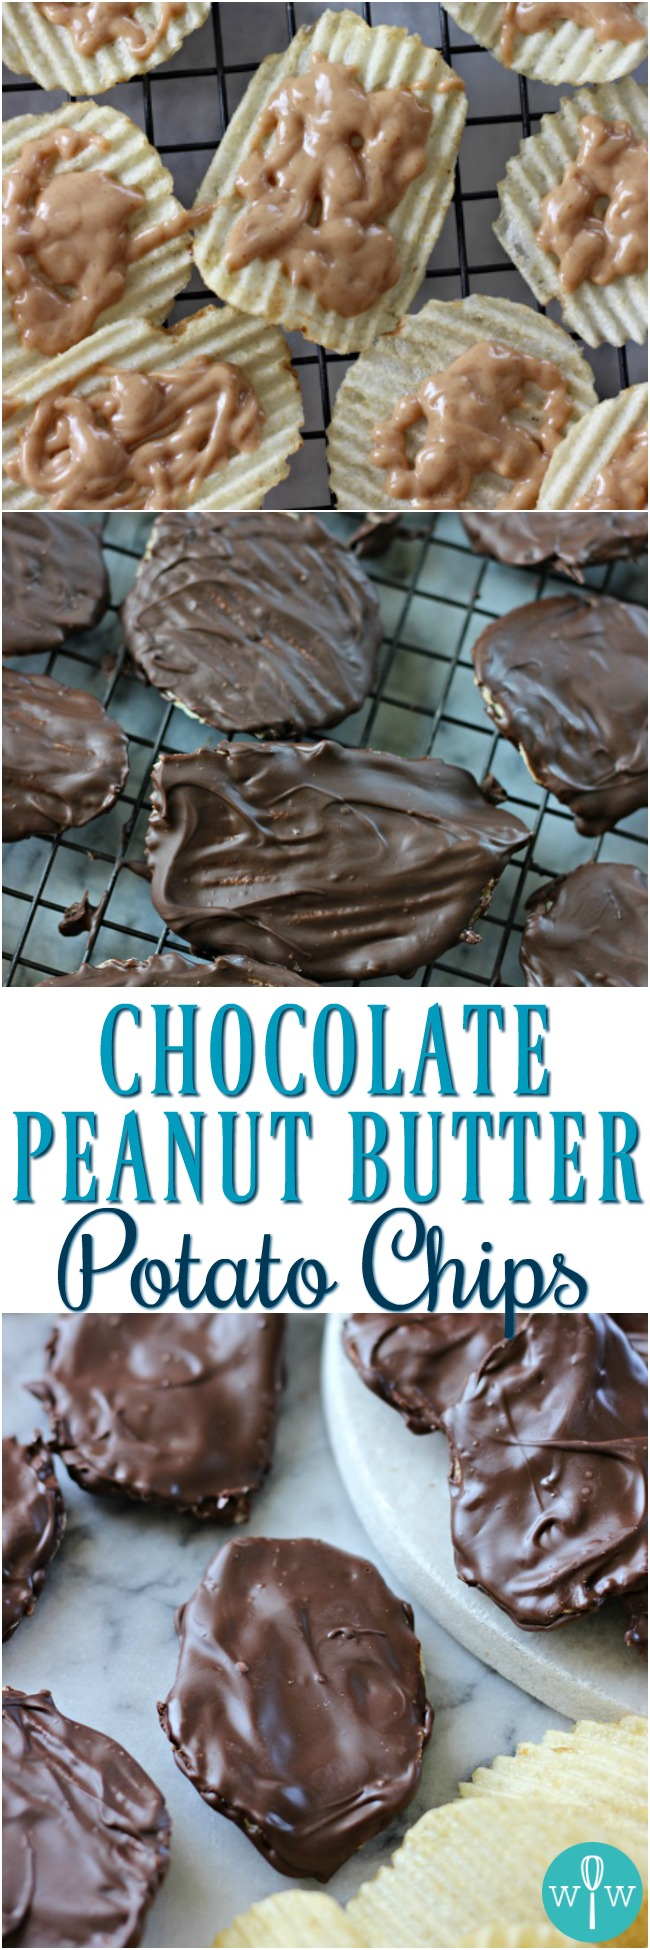 Chocolate Peanut Butter Potato Chips – An amazing salty-sweet combo! Rippled potato chips slathered in creamy peanut butter and rich chocolate! | www.worthwhisking.com